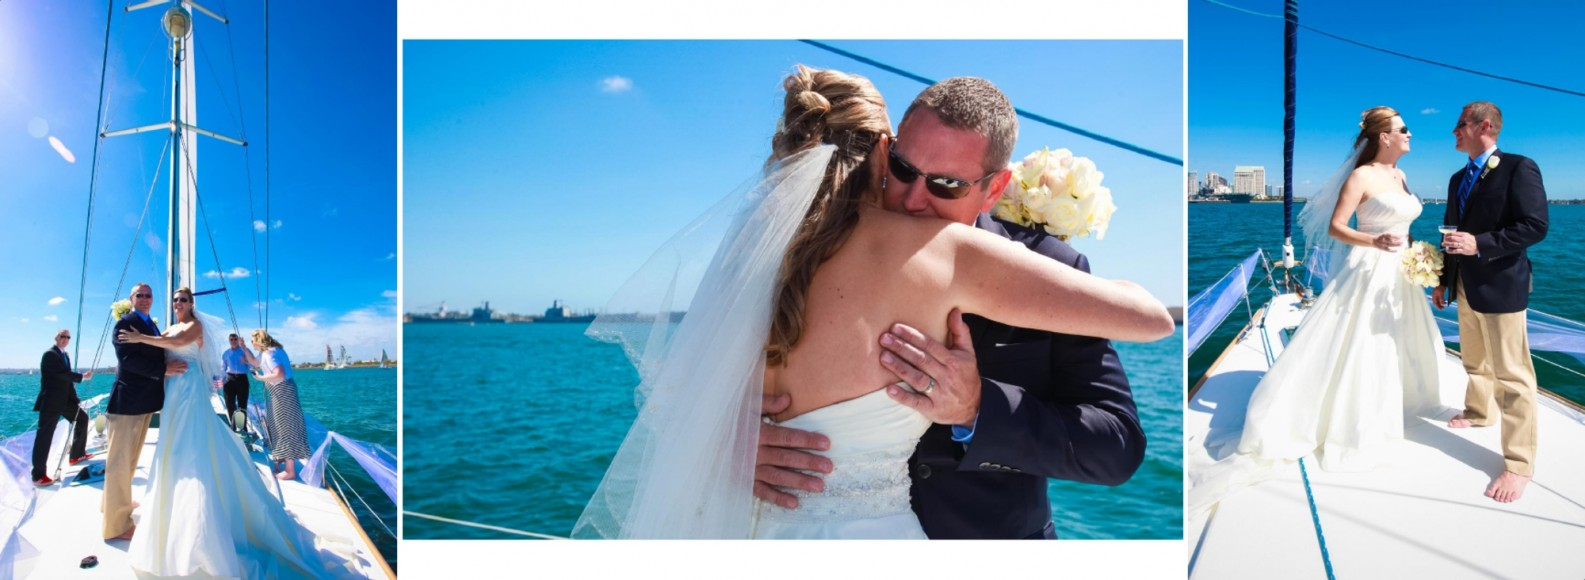 Laura and Davids Wedding Book - San Diego Yacht Wedding by Wedding Photographers Andrew Abouna - Pages 20-21